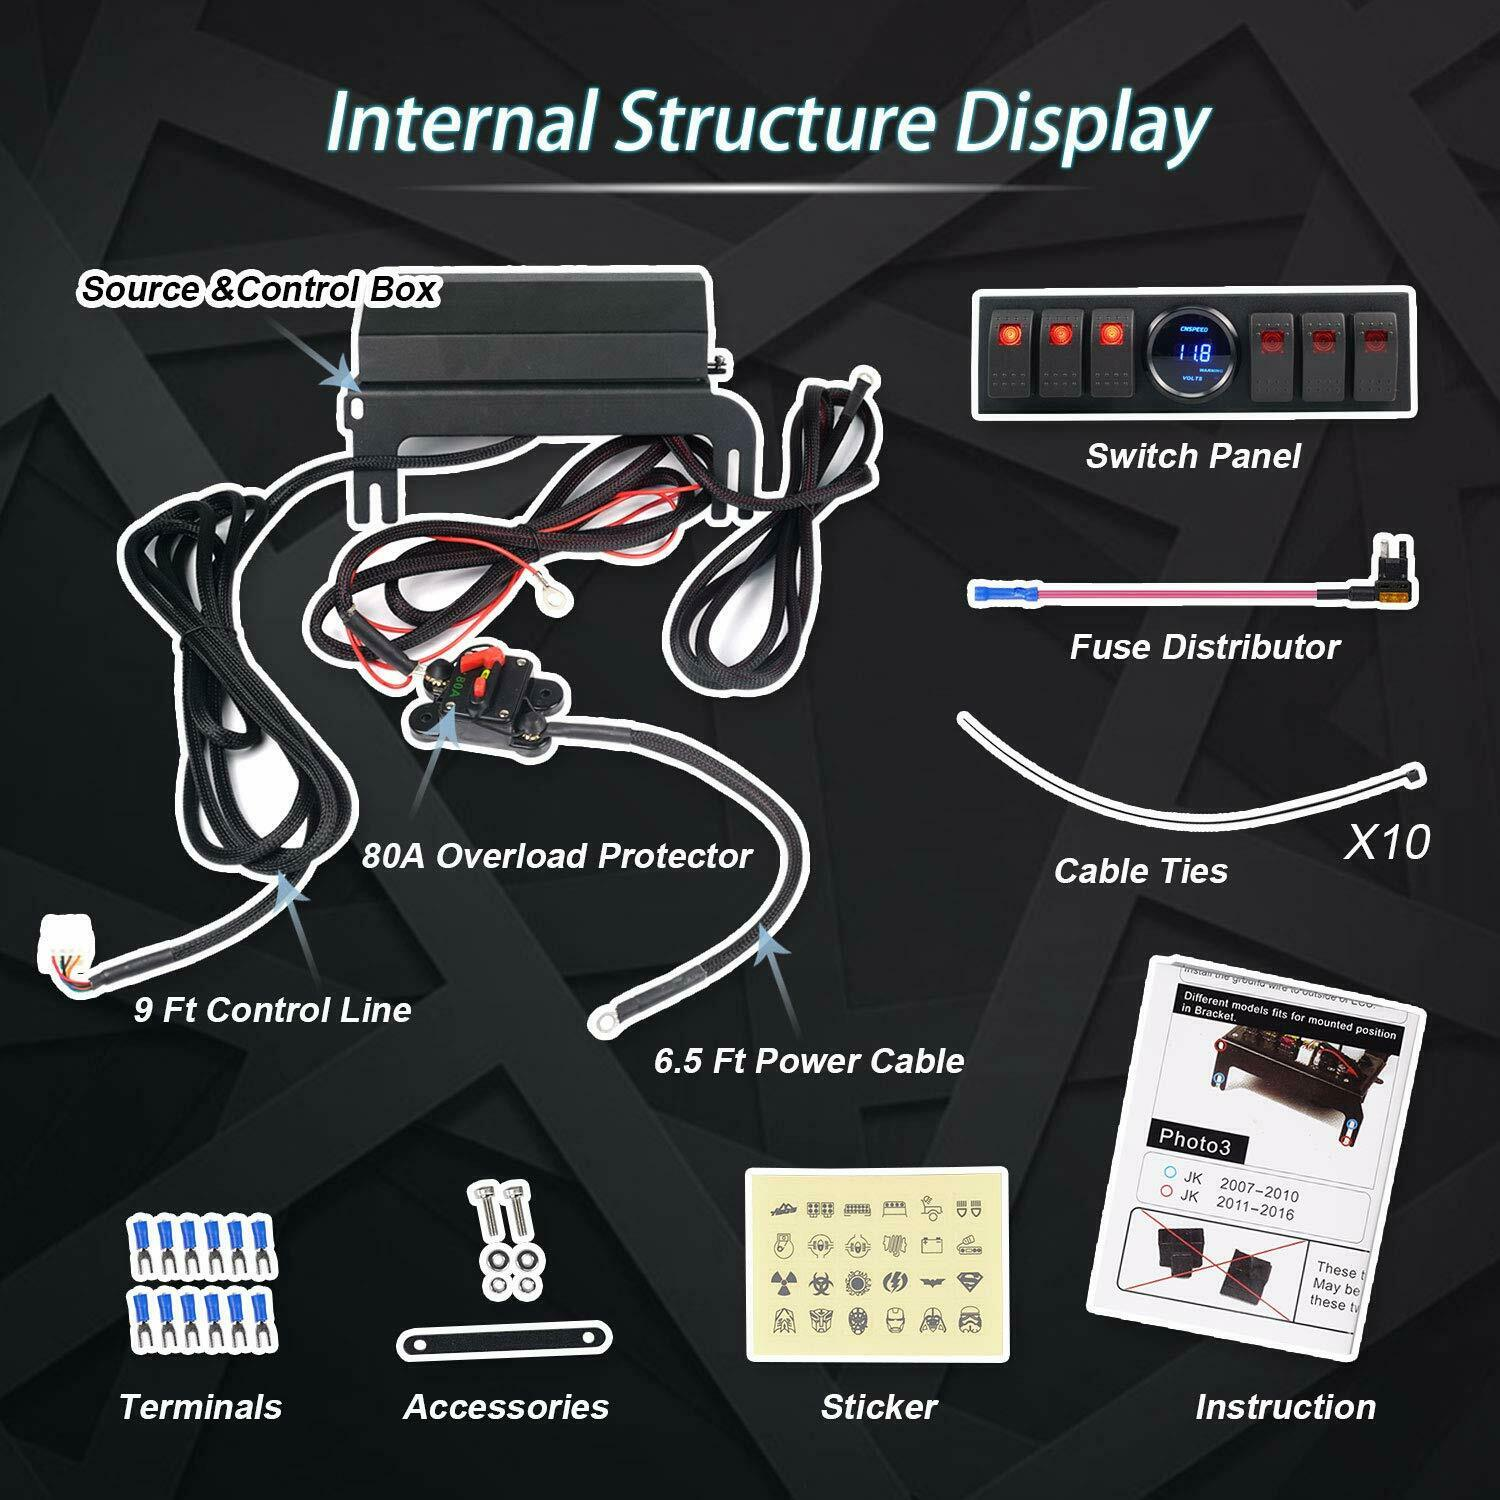 6 Switch S Pod Wiring Relay Harness Voltage Display 2007-2016 Jeep on jeep relay switches, packard relay wiring, jeep clutch, ford relay wiring, jeep fuel pump relay, mini relay wiring, mercury relay wiring, car relay wiring, jeep horn relay, motorcycle relay wiring, iso relay wiring, jeep brake lights, kia relay wiring, volvo relay wiring, jeep headlights, renix relay wiring, automotive relay wiring, gm relay wiring, subaru relay wiring, ac relay wiring,